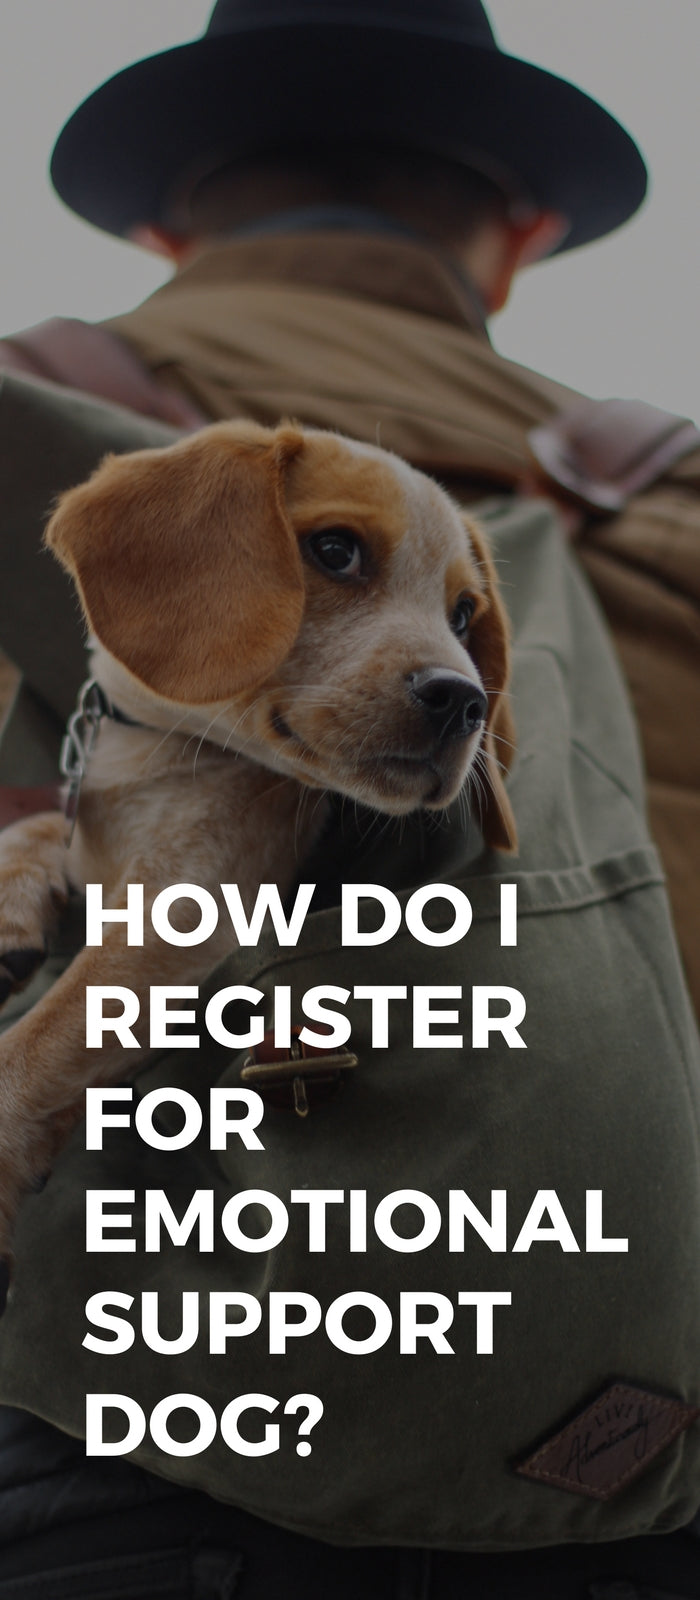 How Do I Register For Emotional Support Dog?